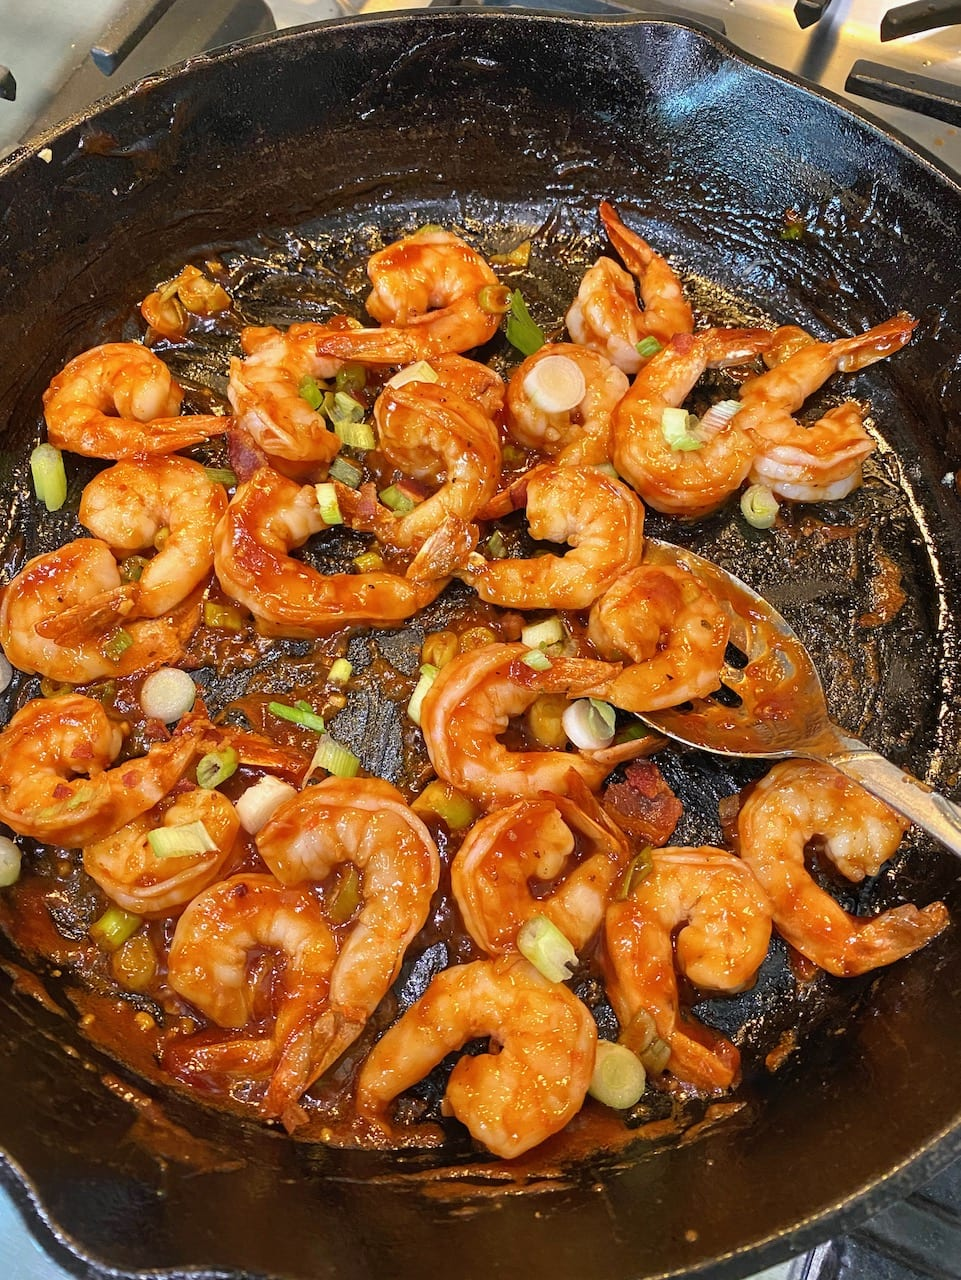 barbecue sauce covering shrimp in a cast iron skillet